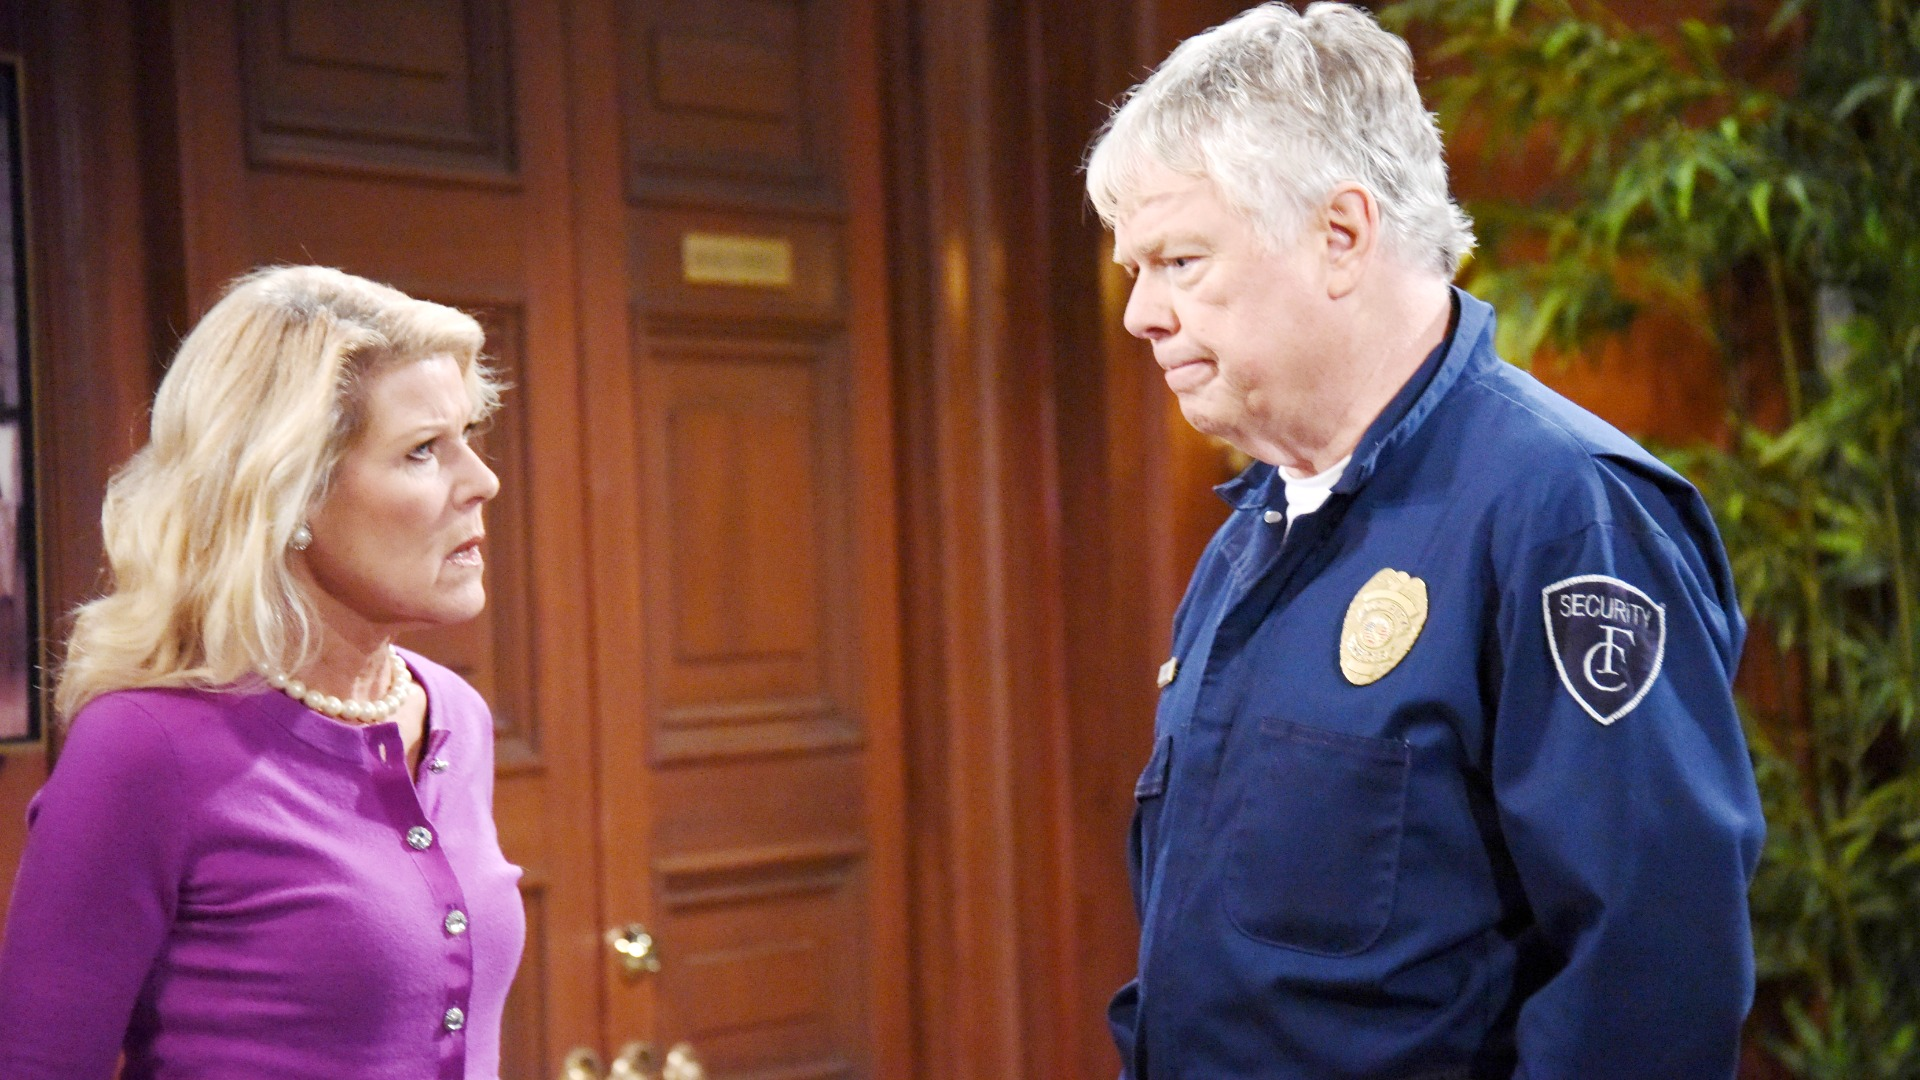 Charlie confesses to Pam about suspicions he has regarding Ridge and Quinn's loyalty to their significant others.